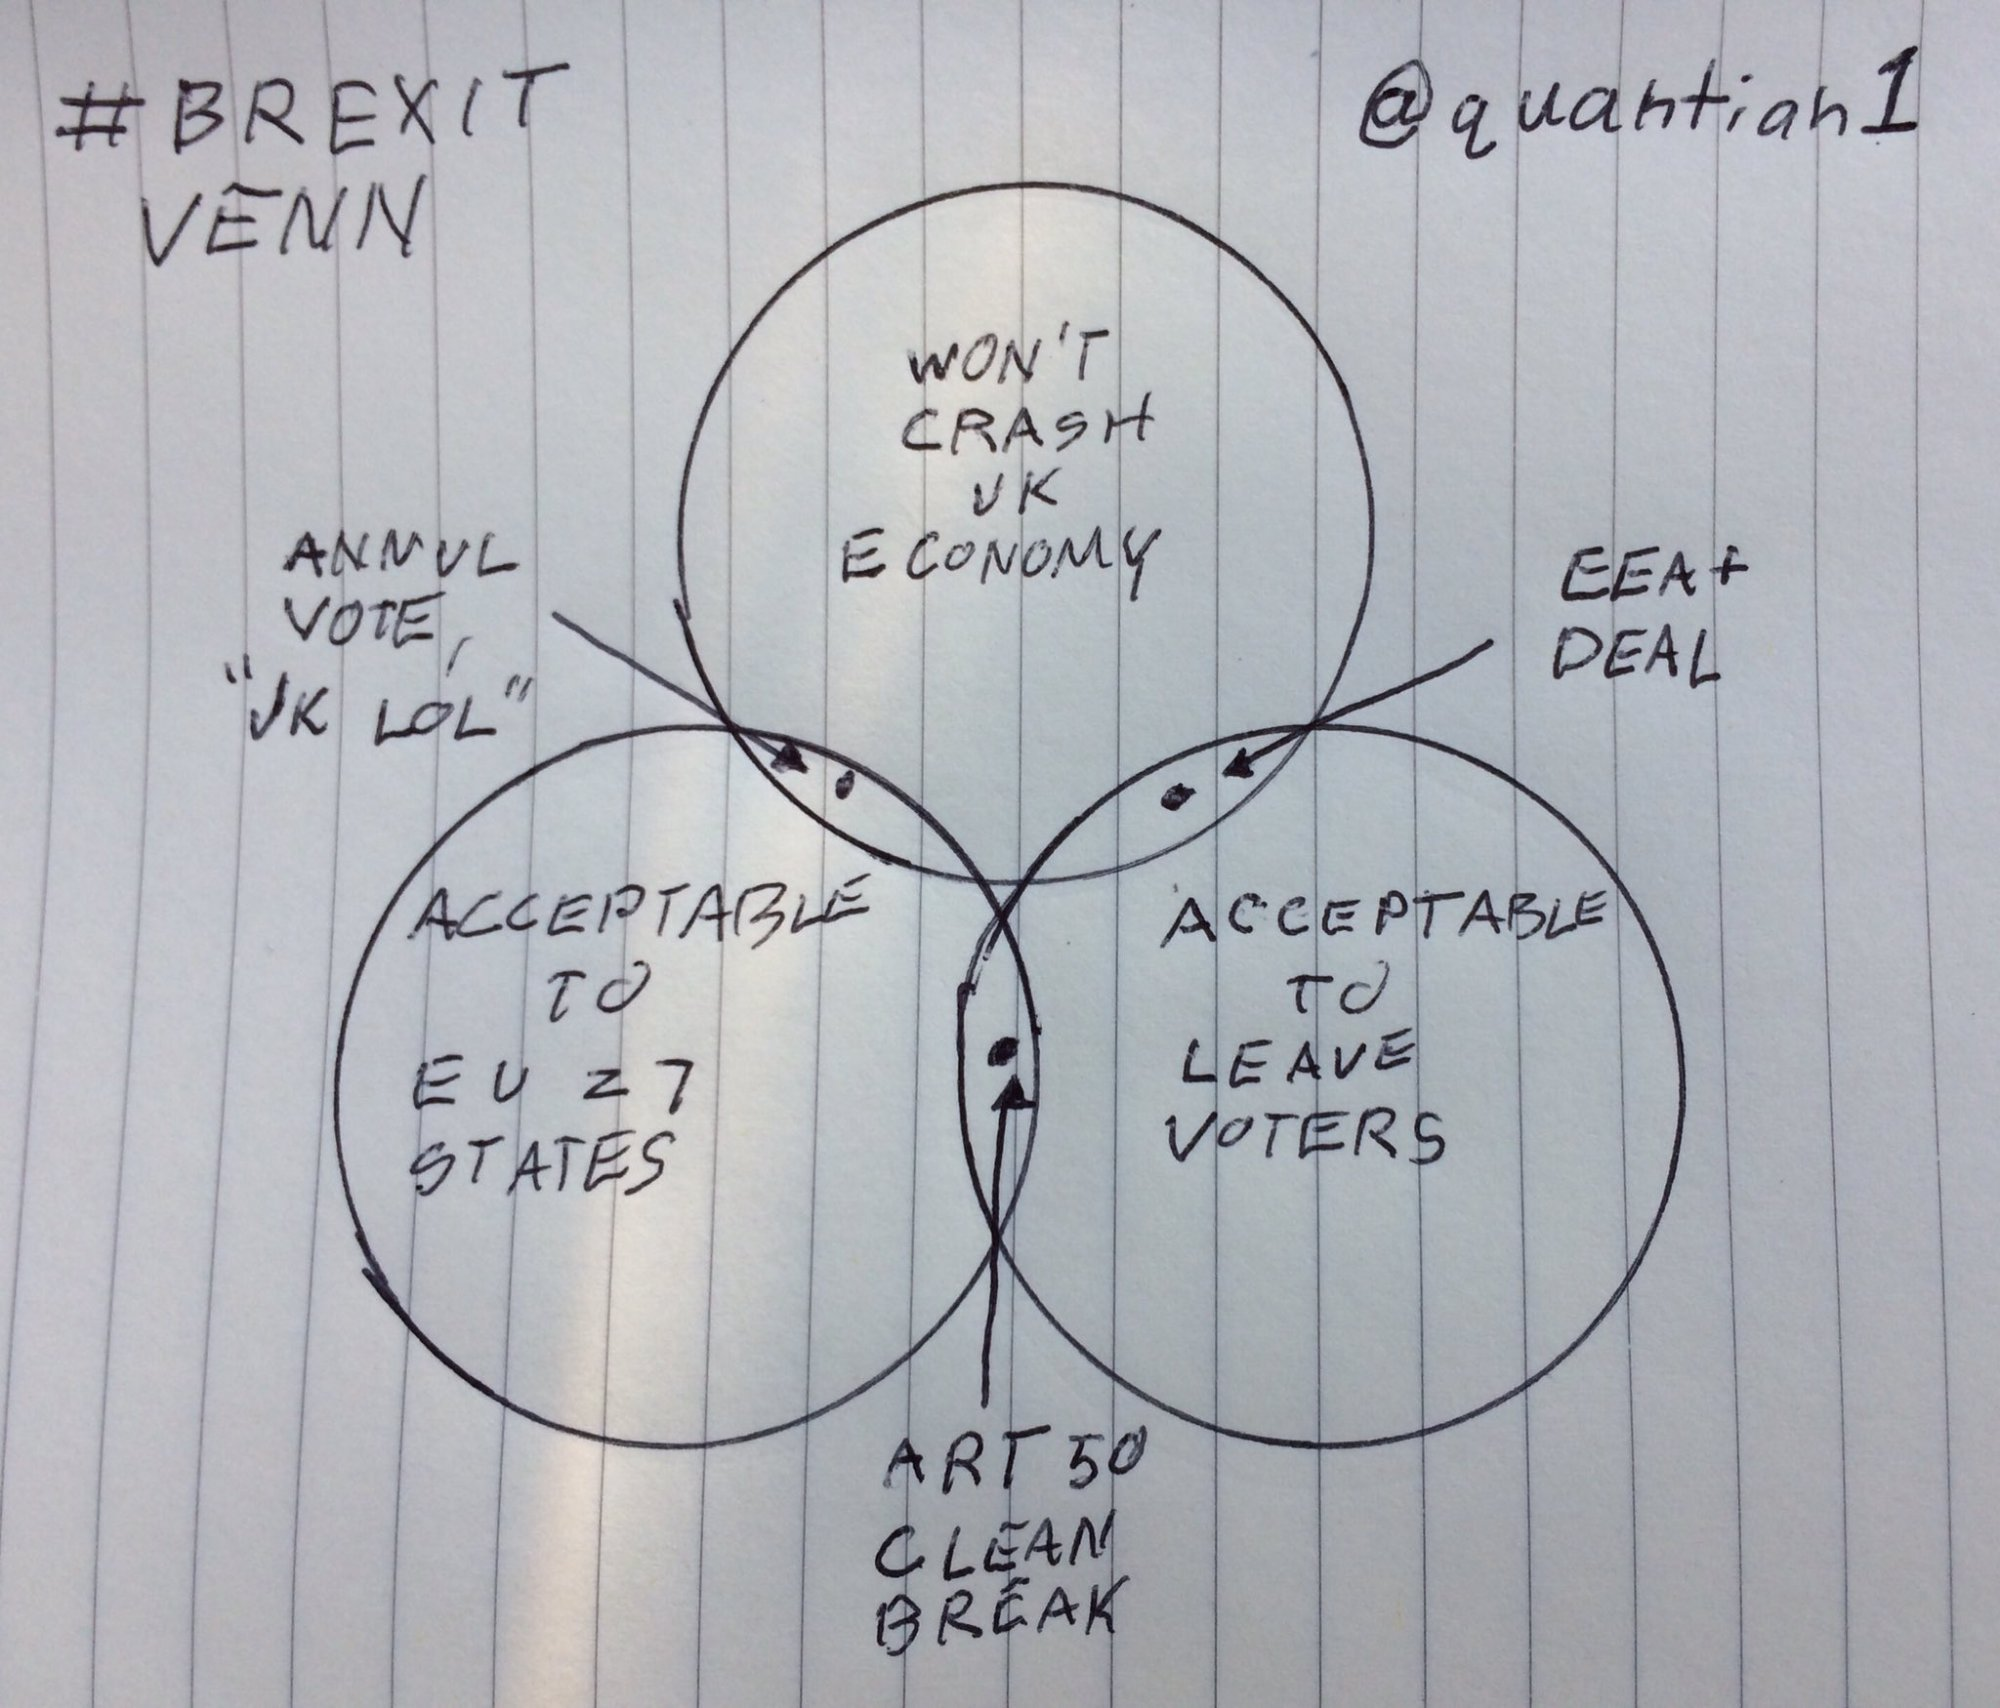 hight resolution of brexit has put the uk in an impossible position this venn diagram explains why vox